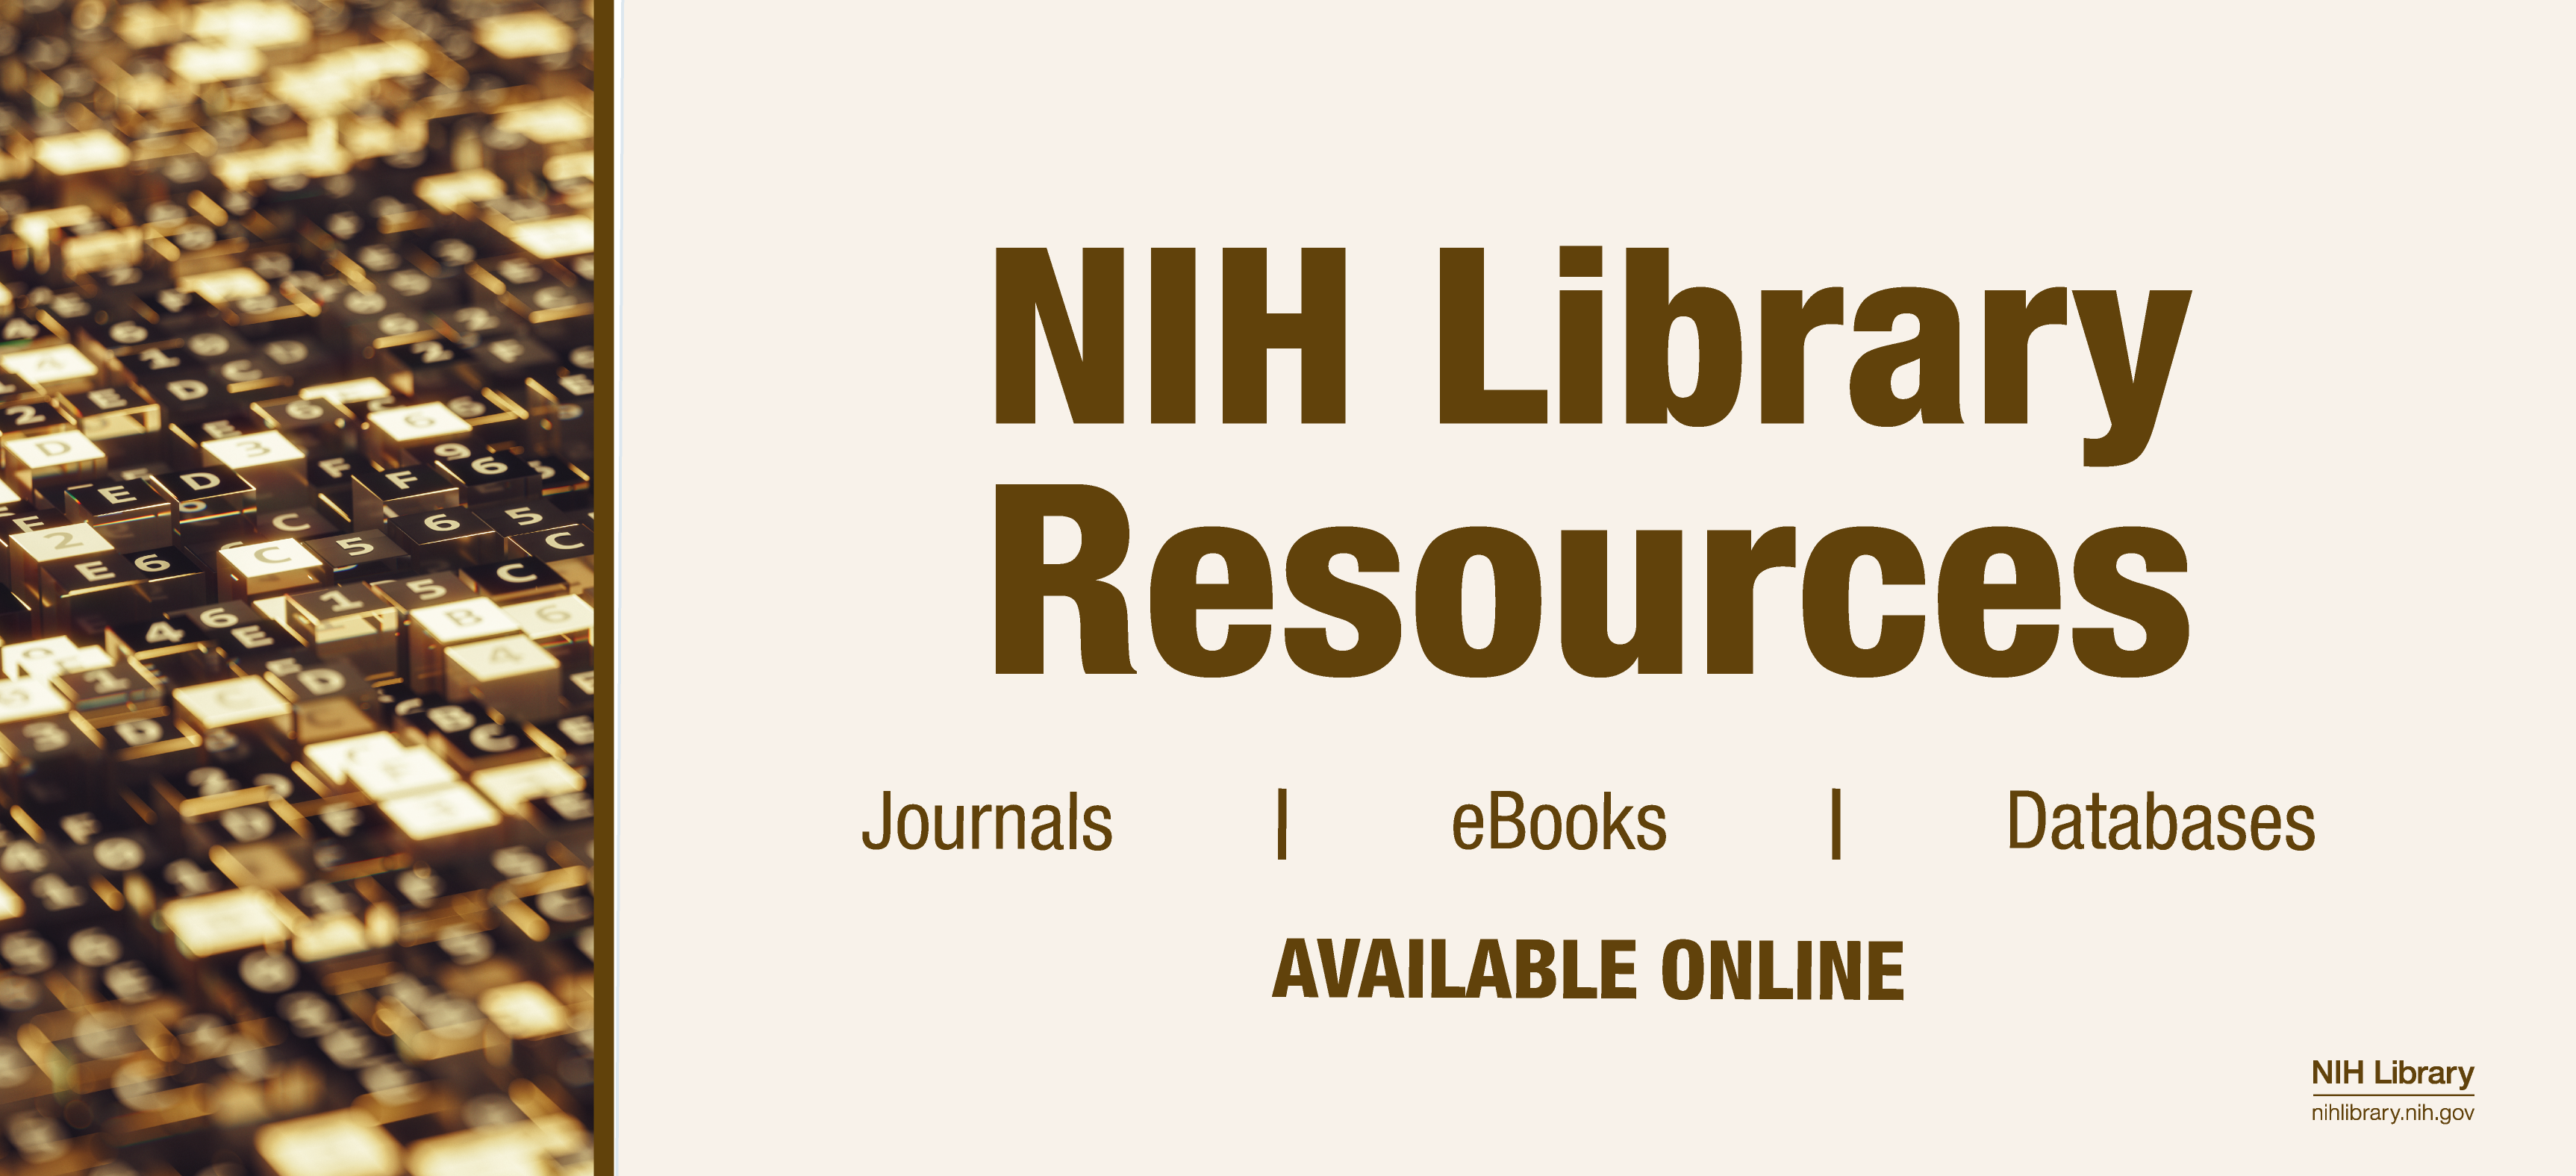 Virtual Research Resources from the NIH Library